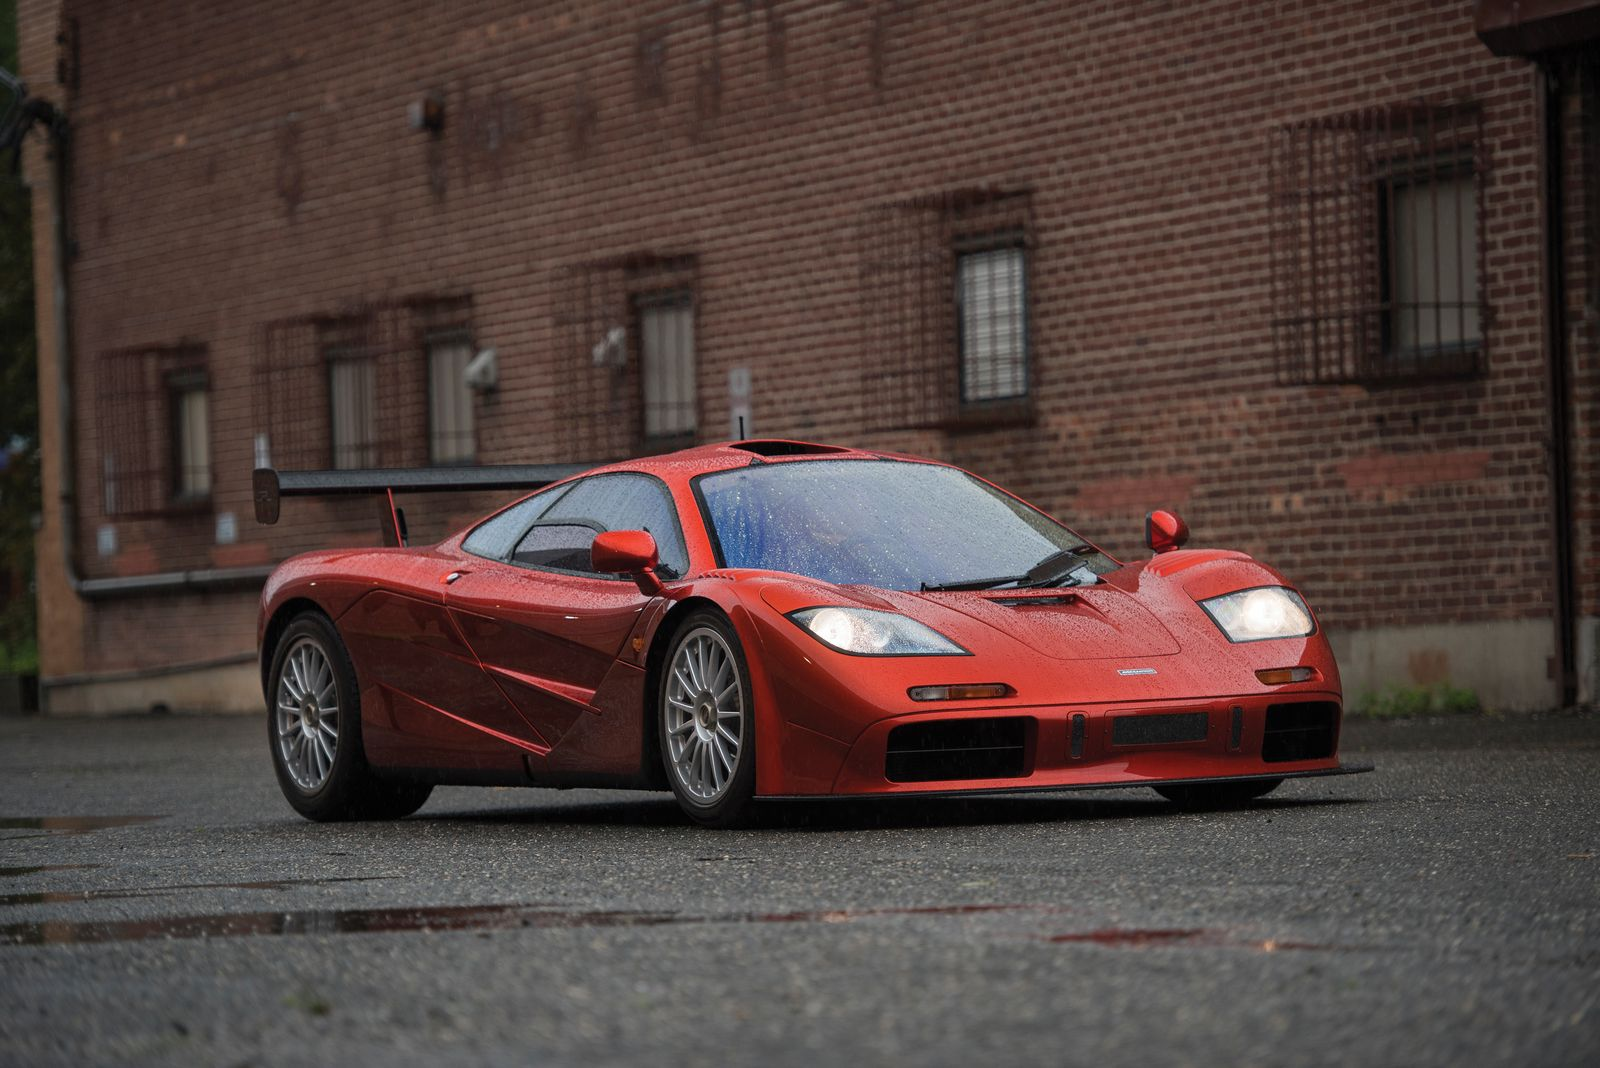 incredible mclaren f1 lm spec heading to rm sotheby 39 s auction gtspirit. Black Bedroom Furniture Sets. Home Design Ideas